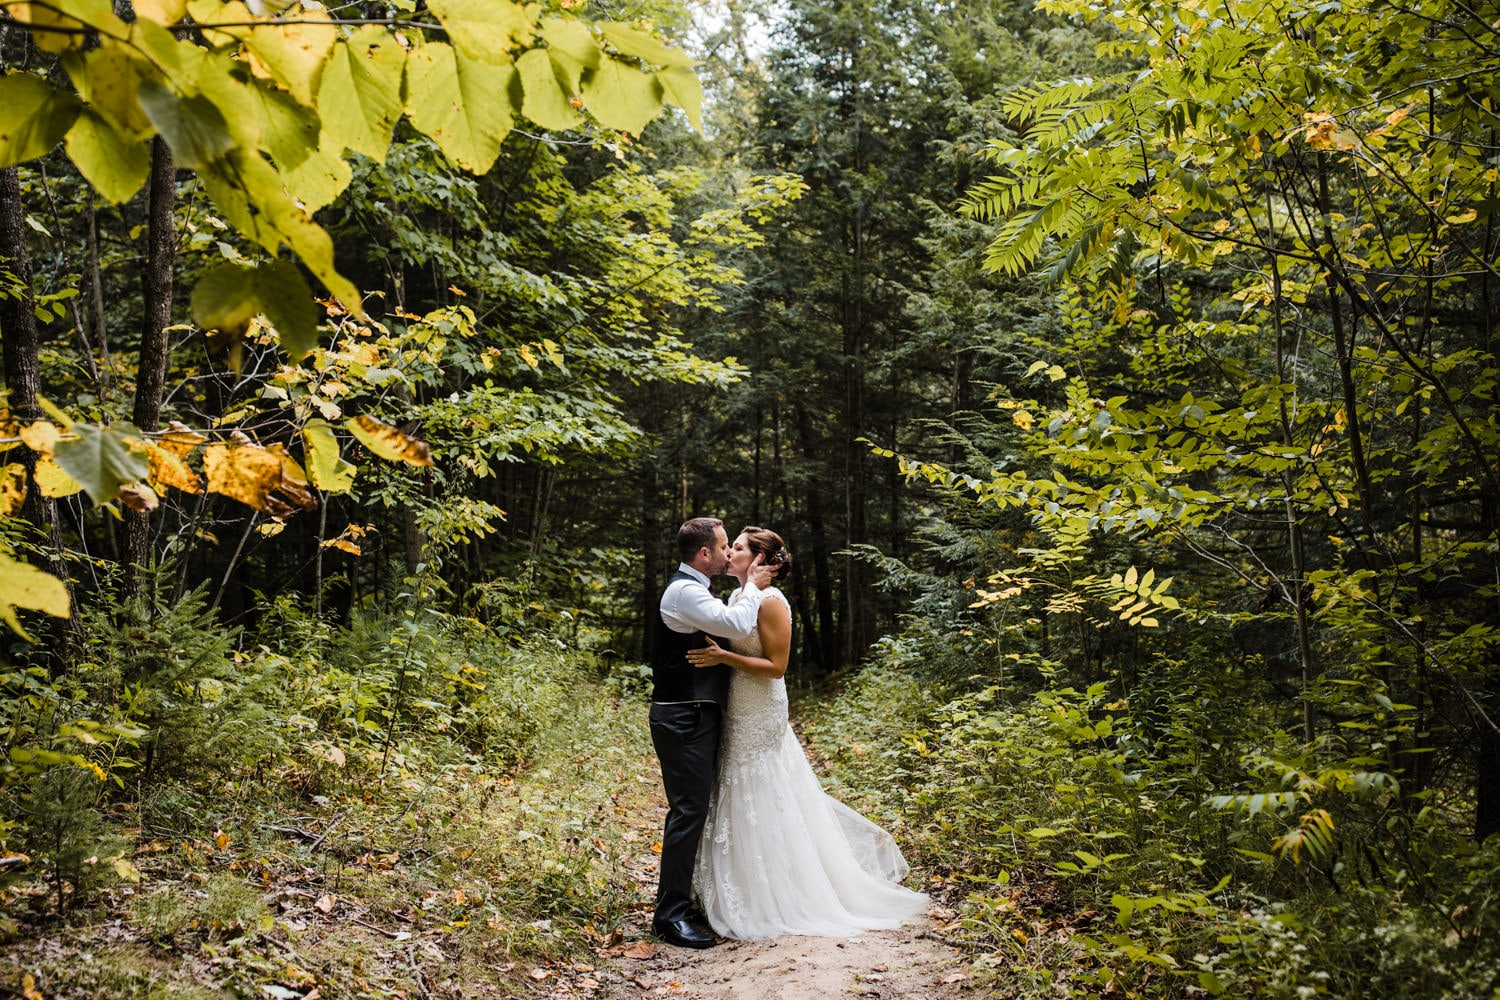 bride and groom kiss in forest - station 4 saisons wedding